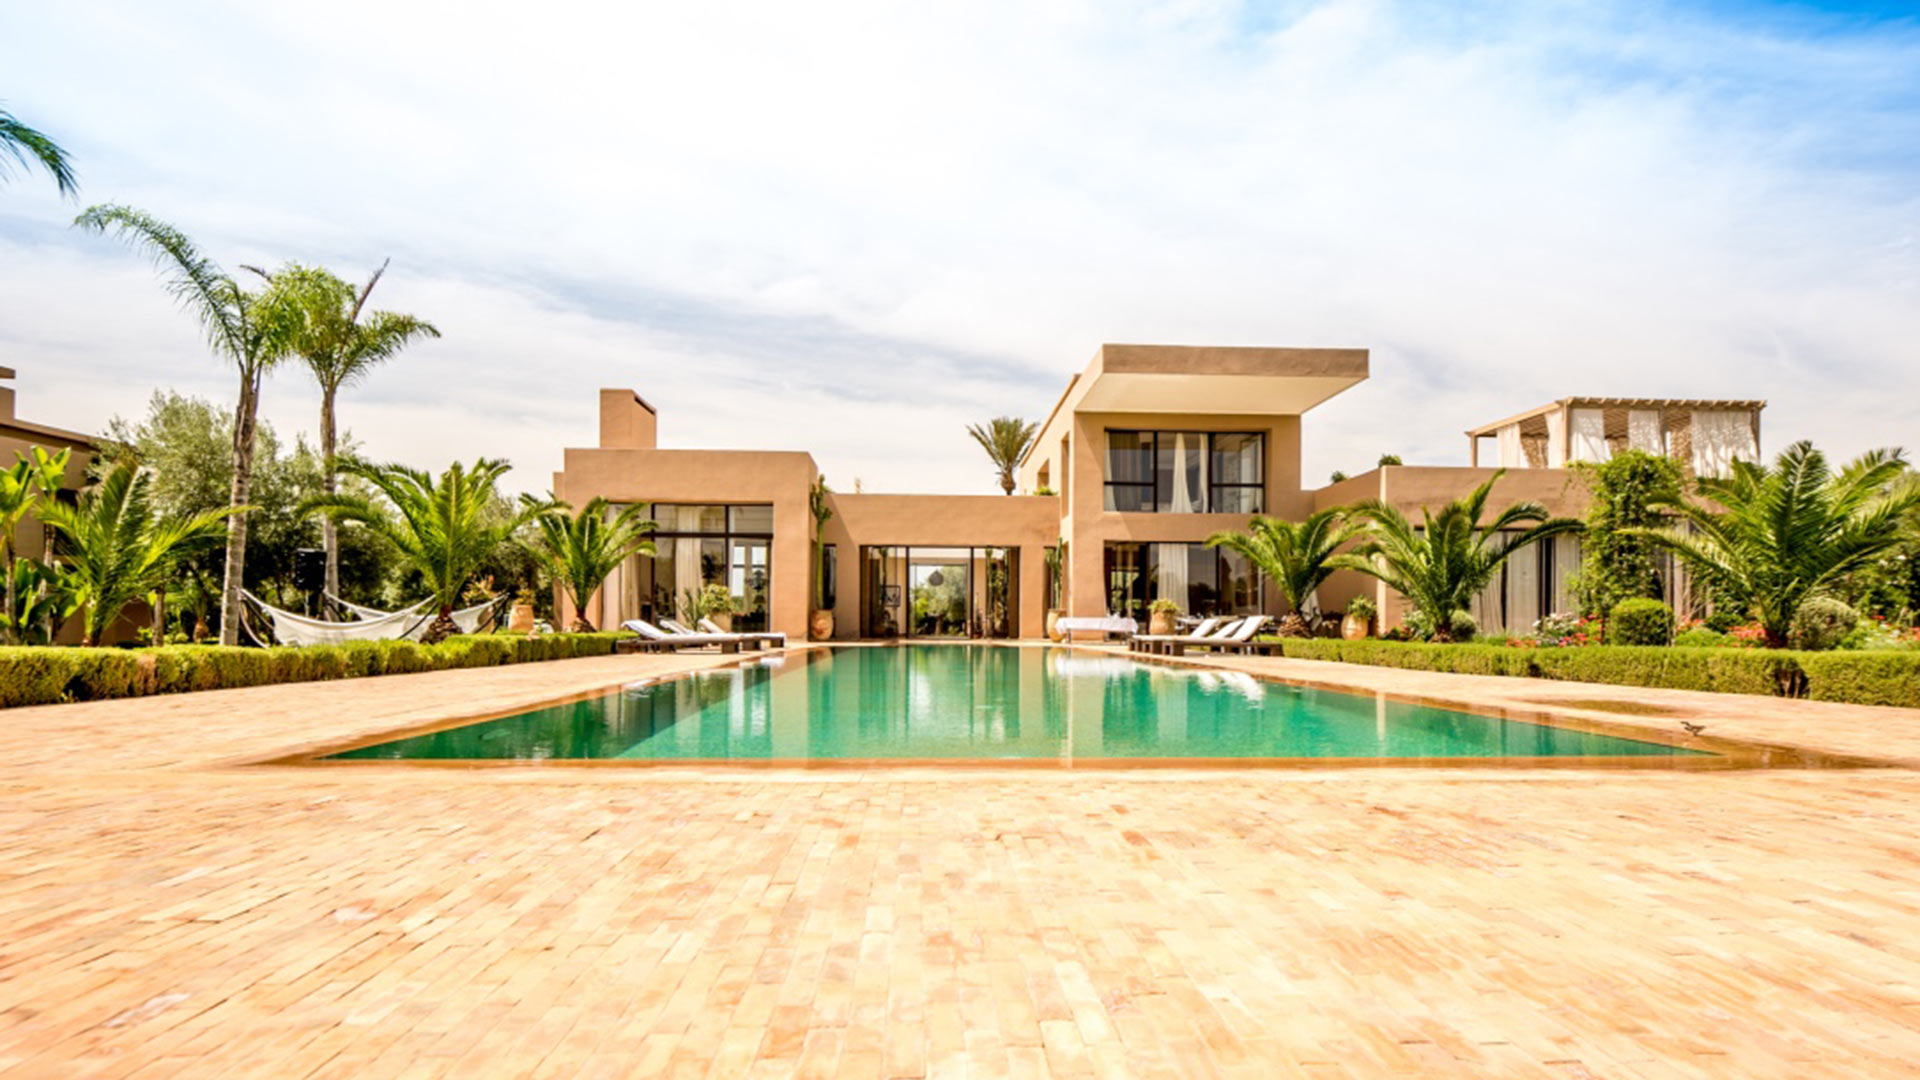 Villa Elghalia, Location à Marrakech